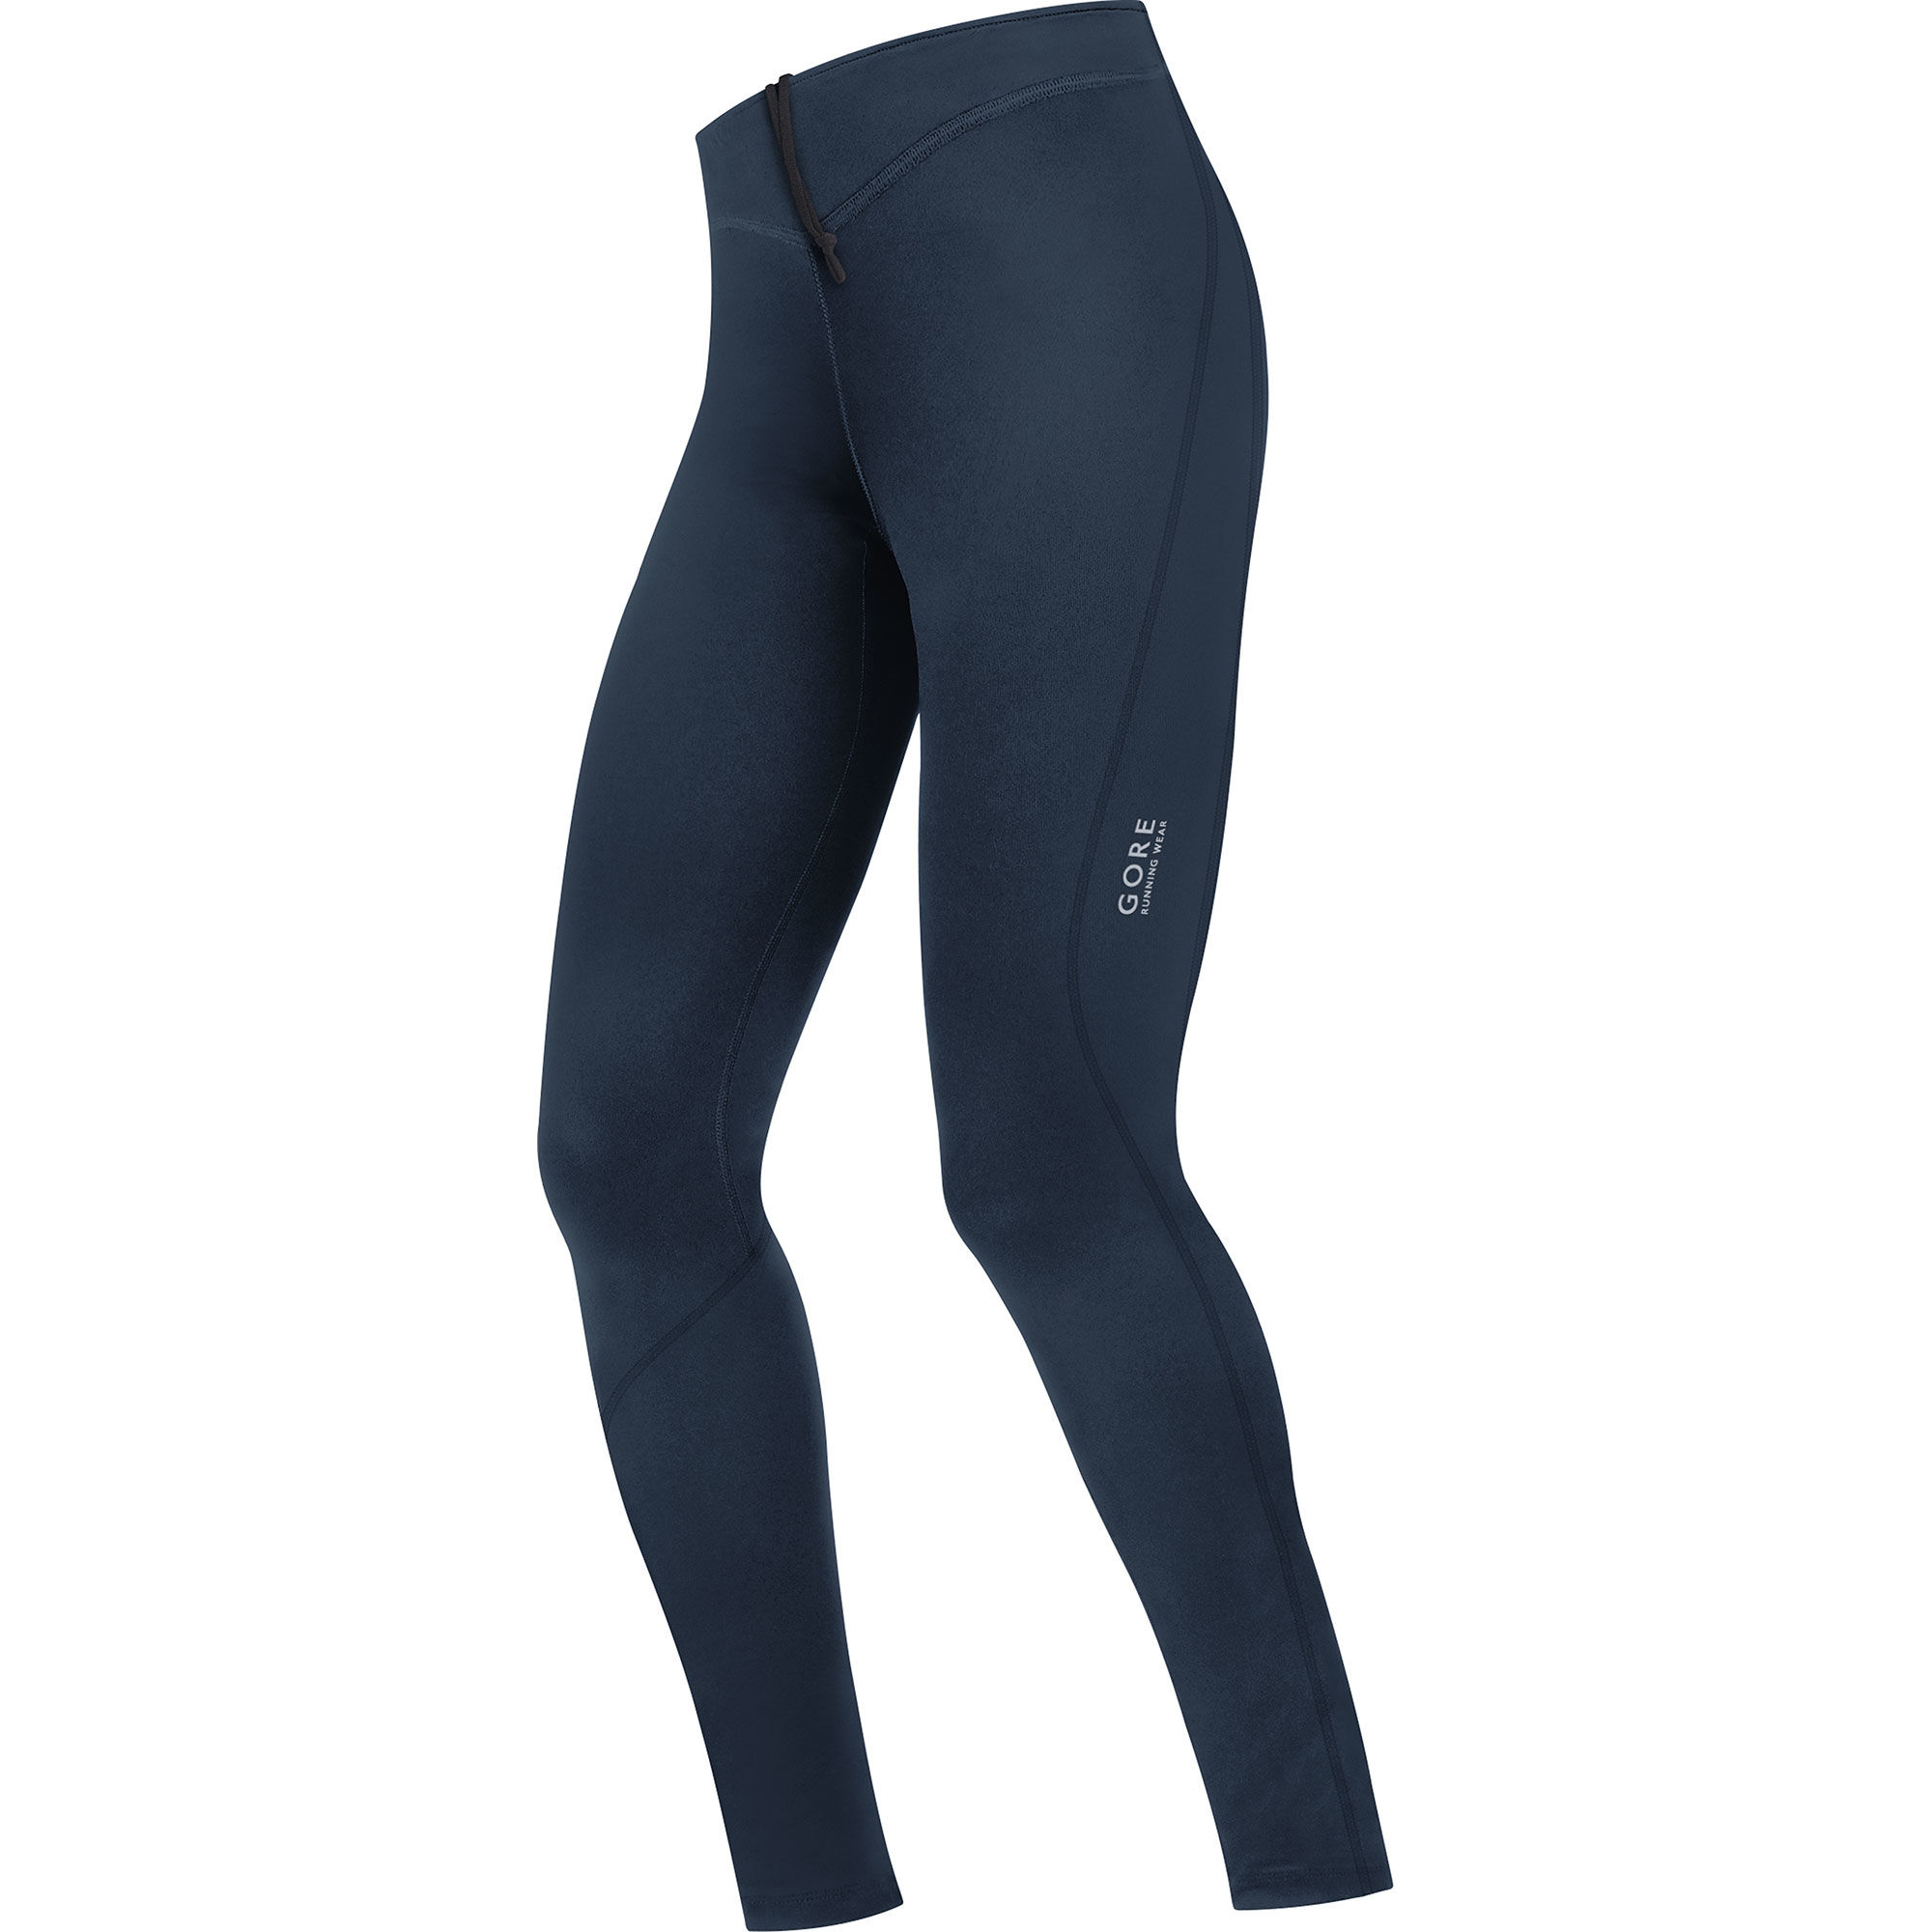 Gore Essential Lady 2.0 Tights in Blau